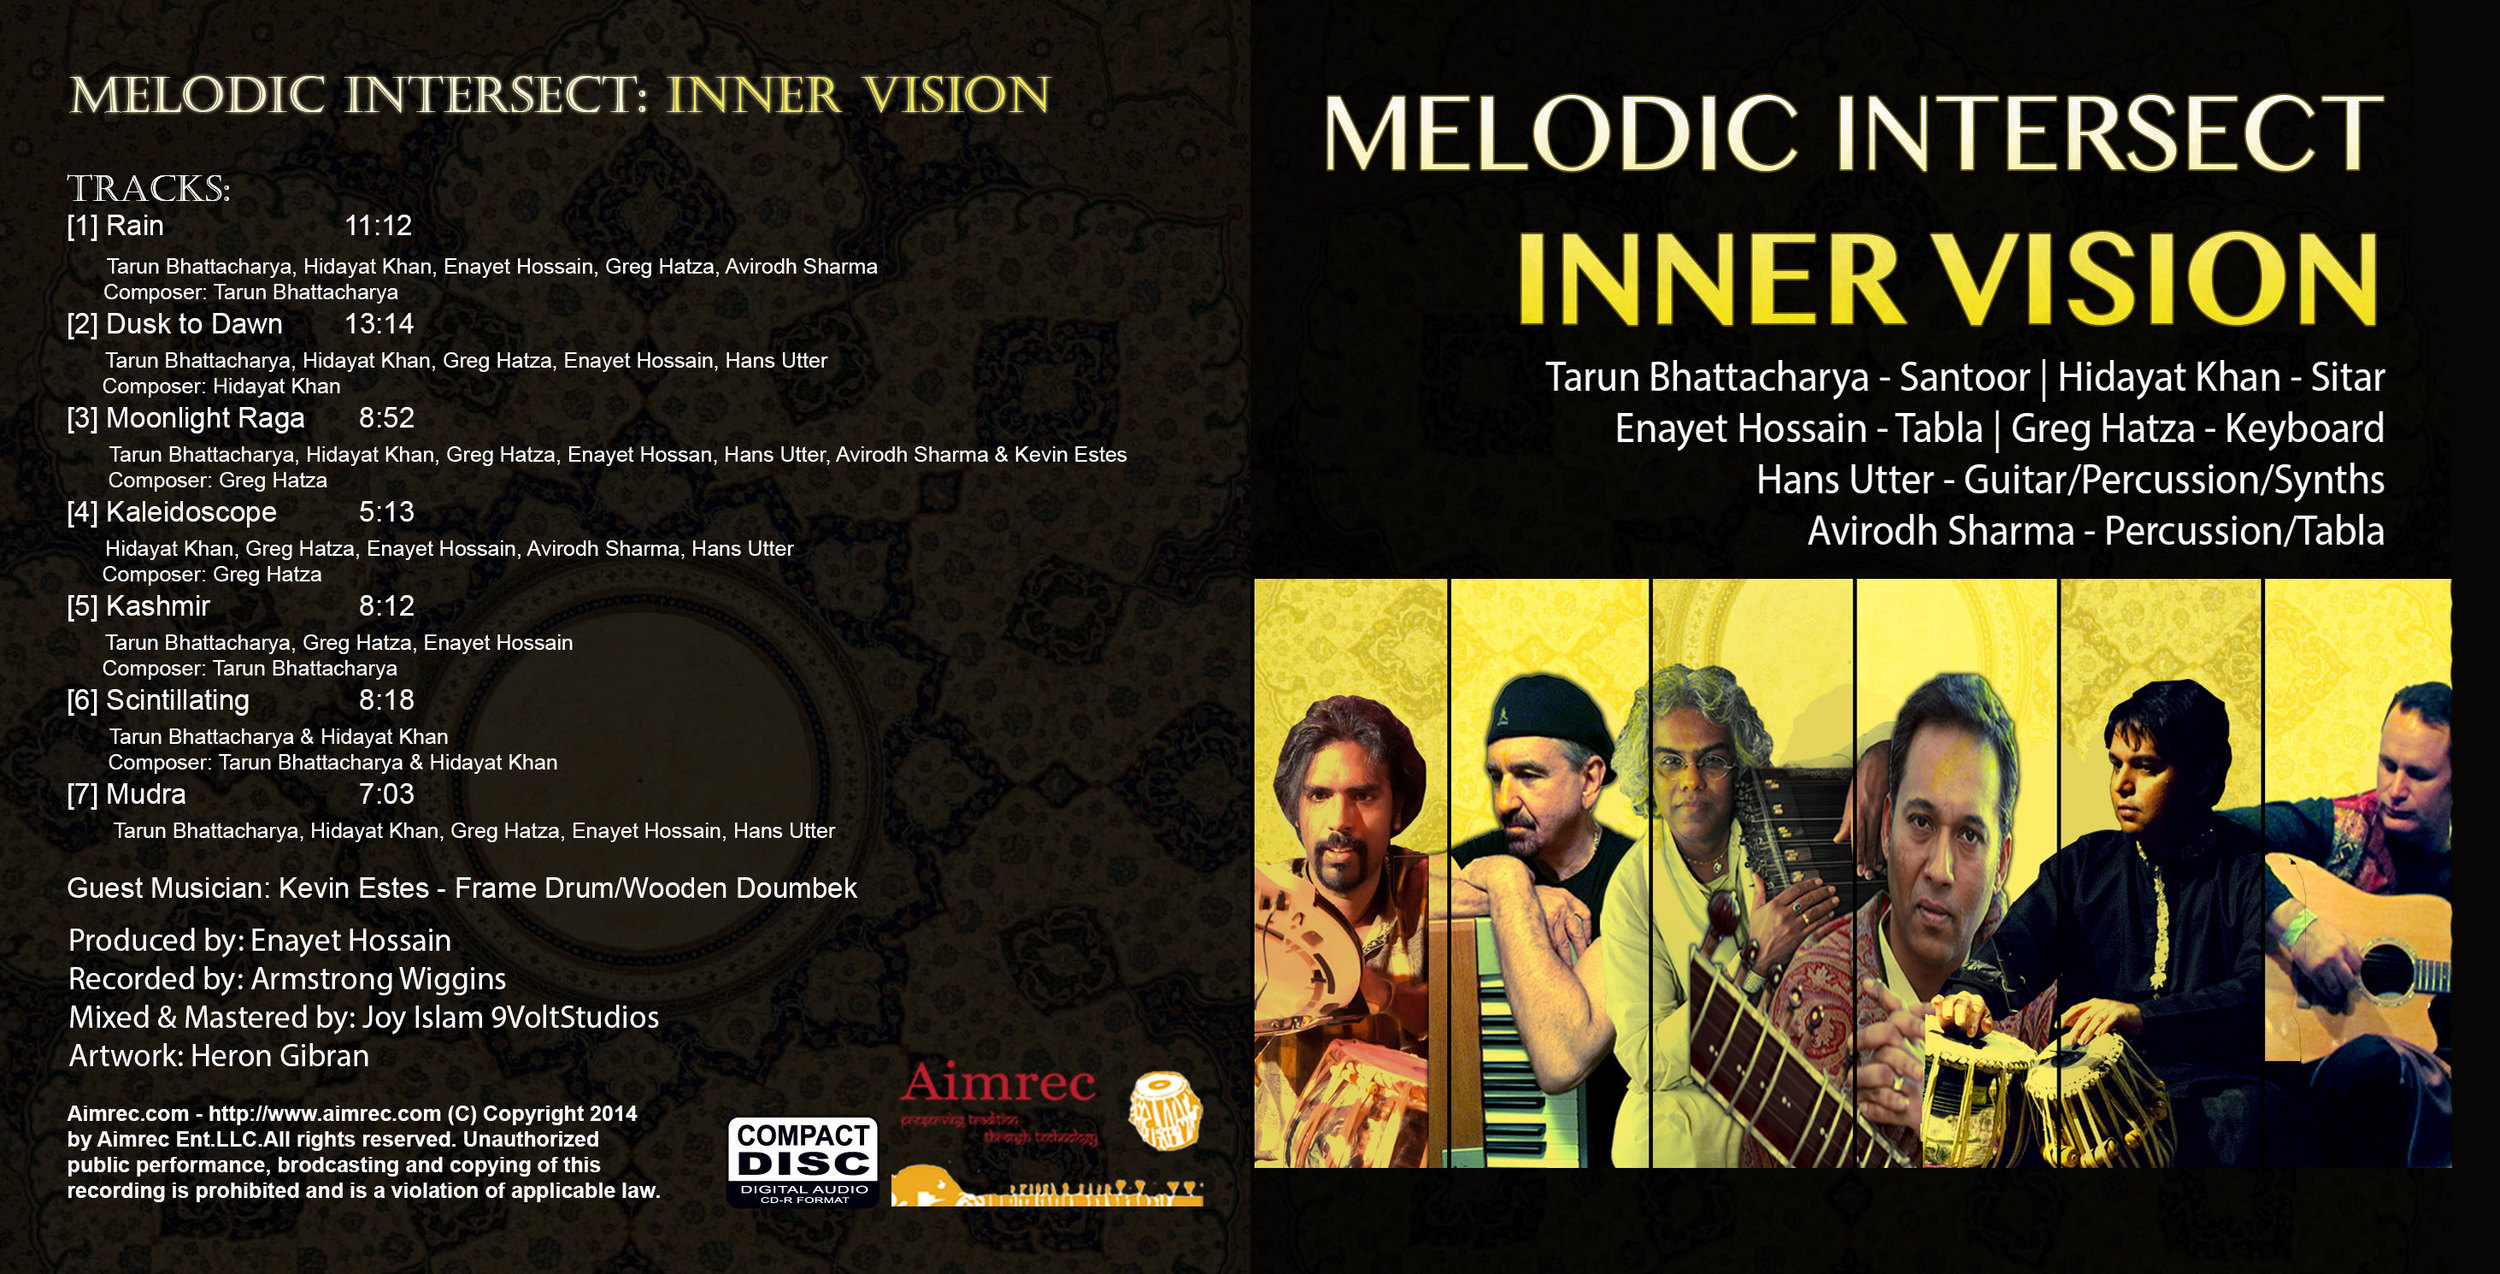 MelodicIntersect-InnerVision